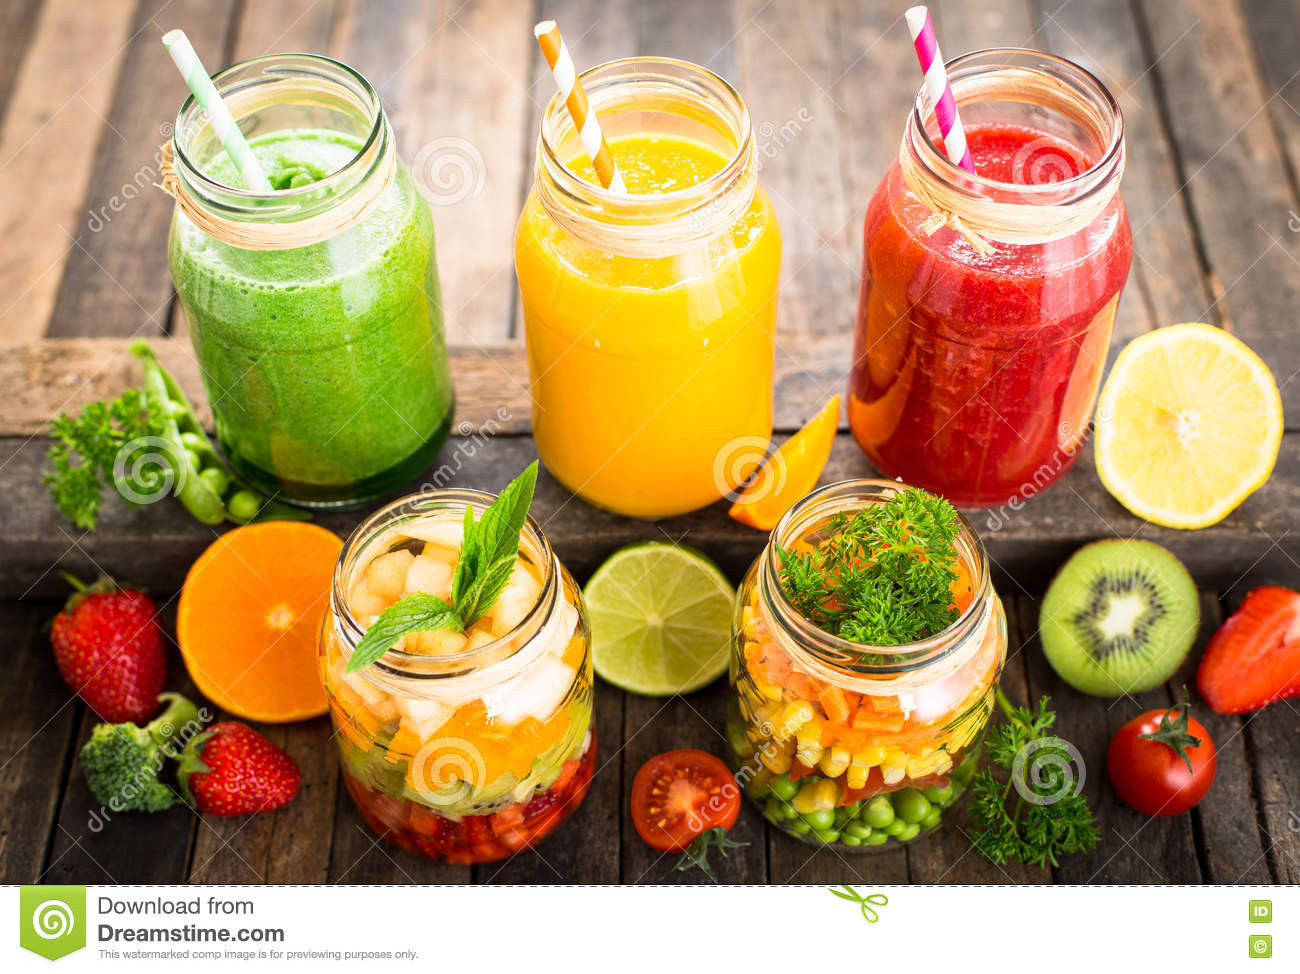 Healthy Fruit And Vegetable Smoothie Recipes  Healthy Fruit And Ve able Smoothies Royalty Free Stock